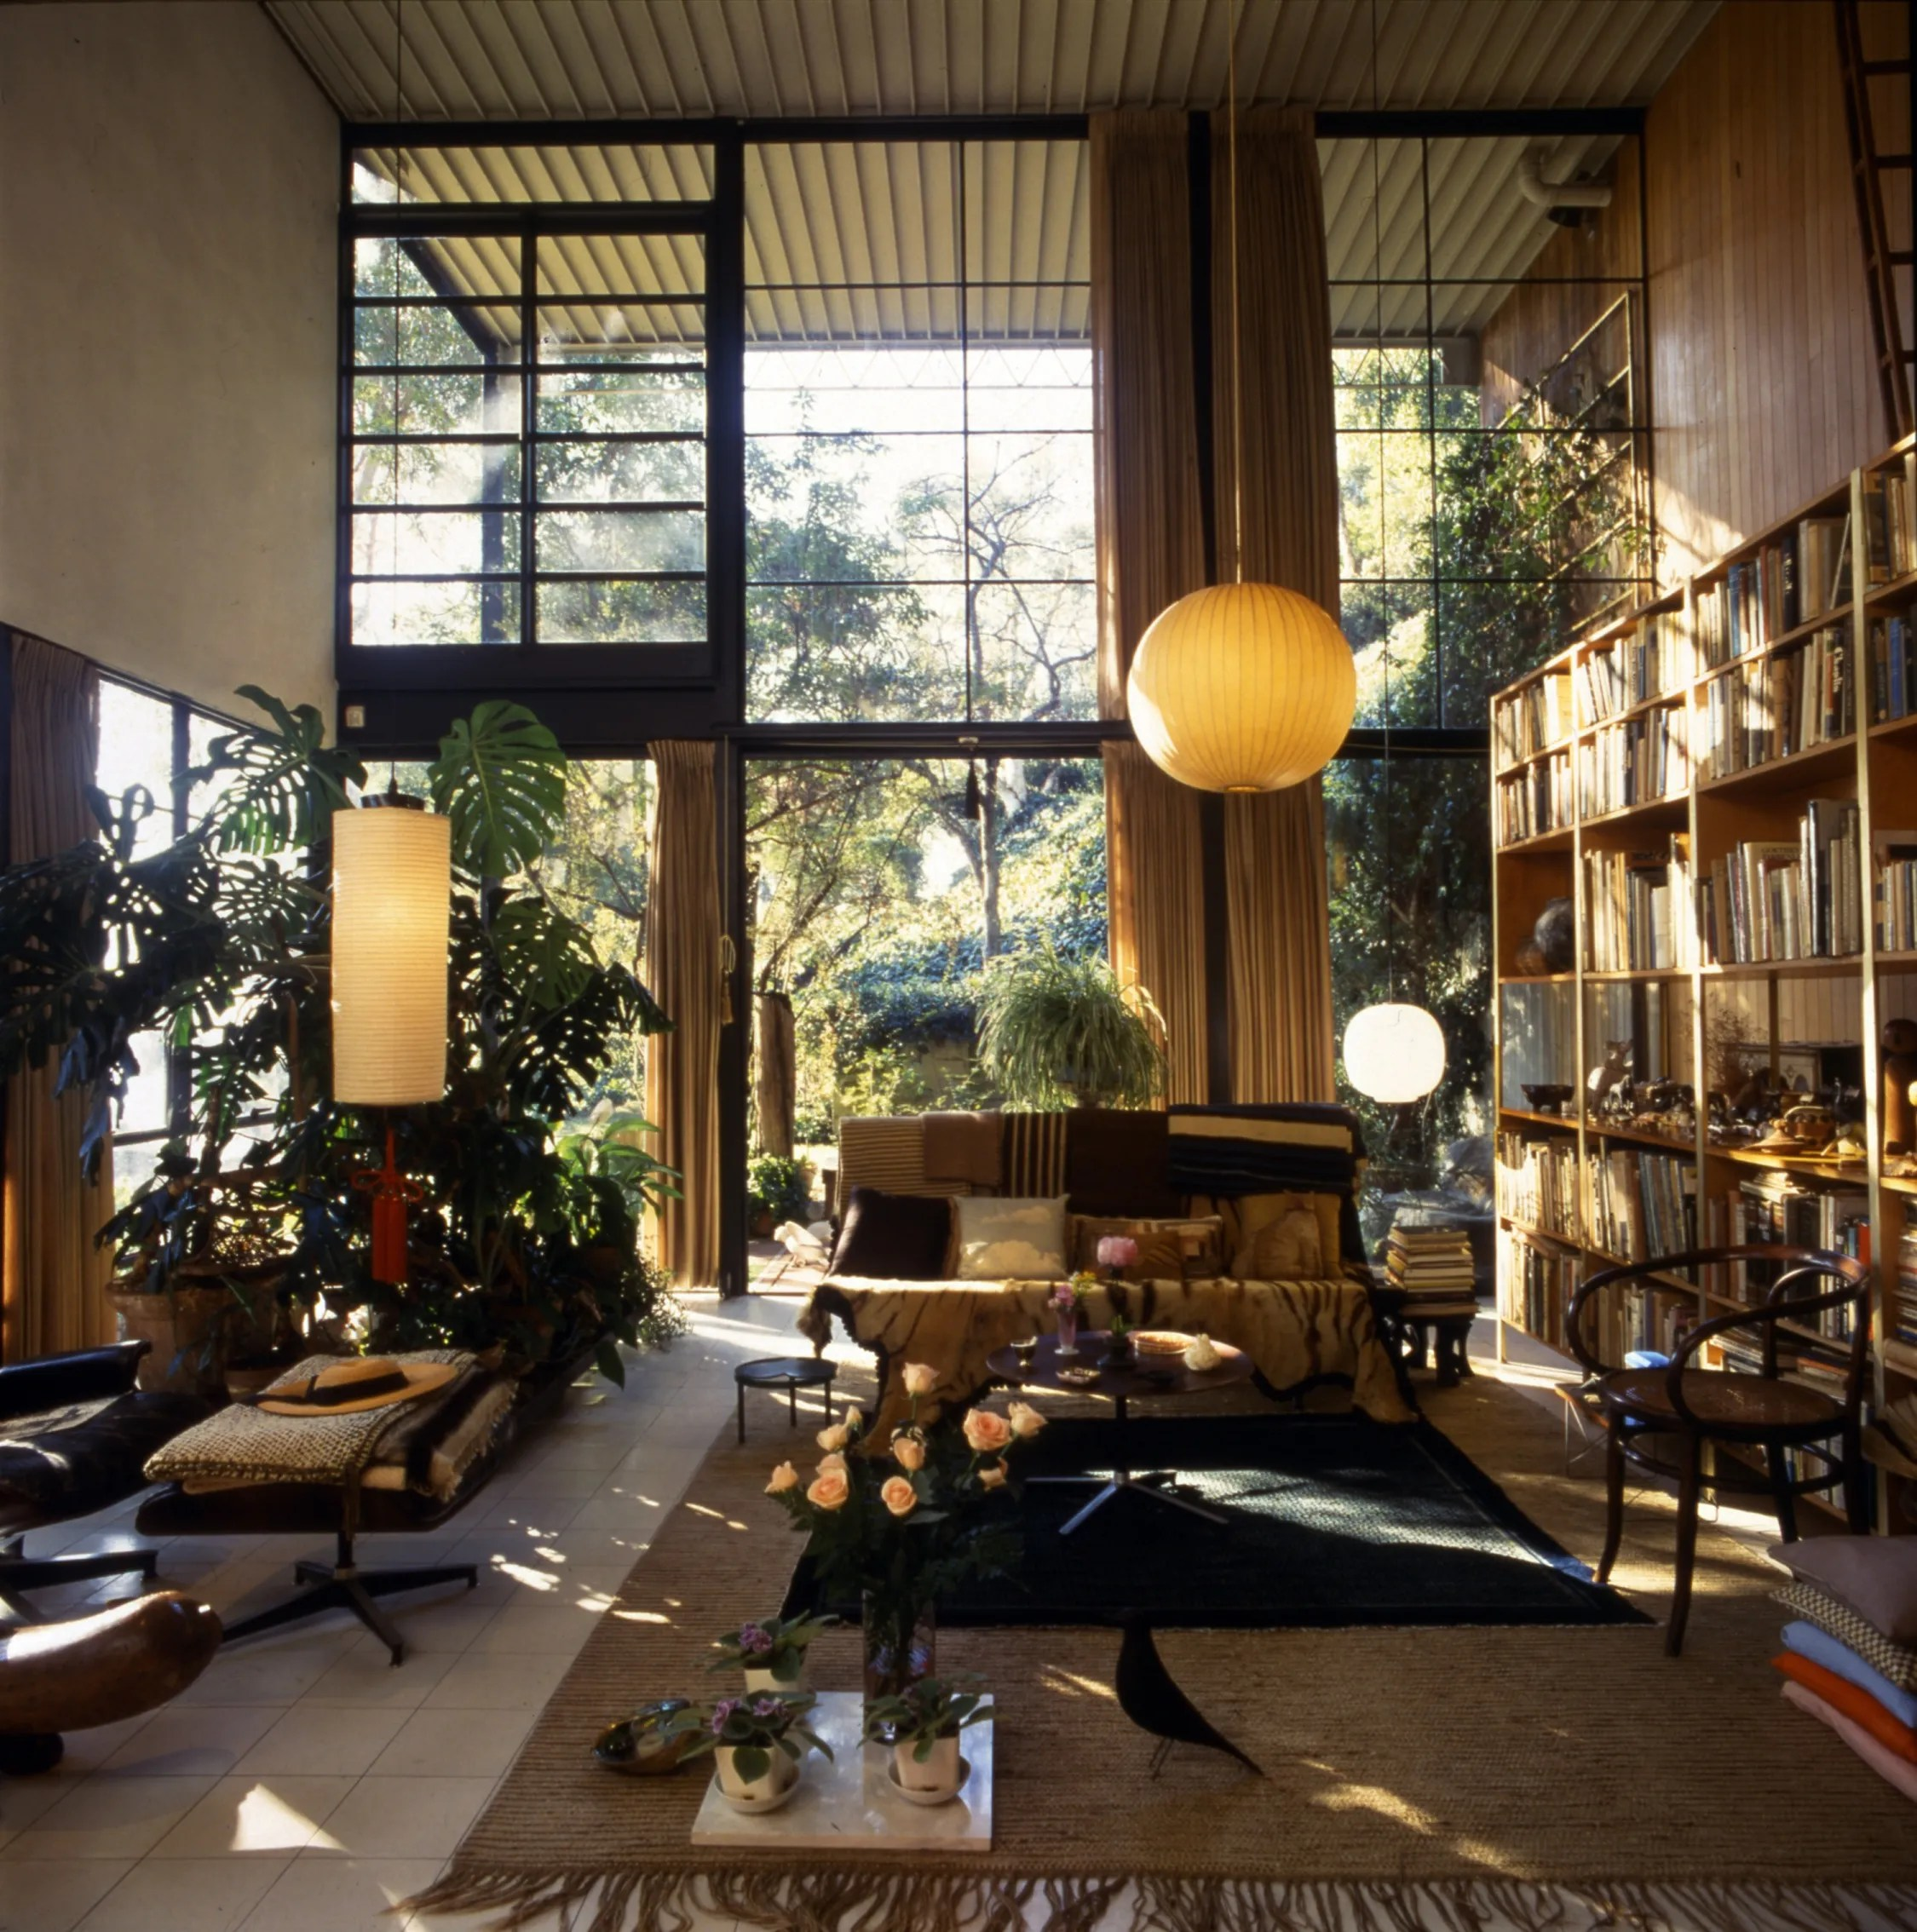 Eames Chair Creators Ray And Charles Eames Featured In New Book Architectural Digest